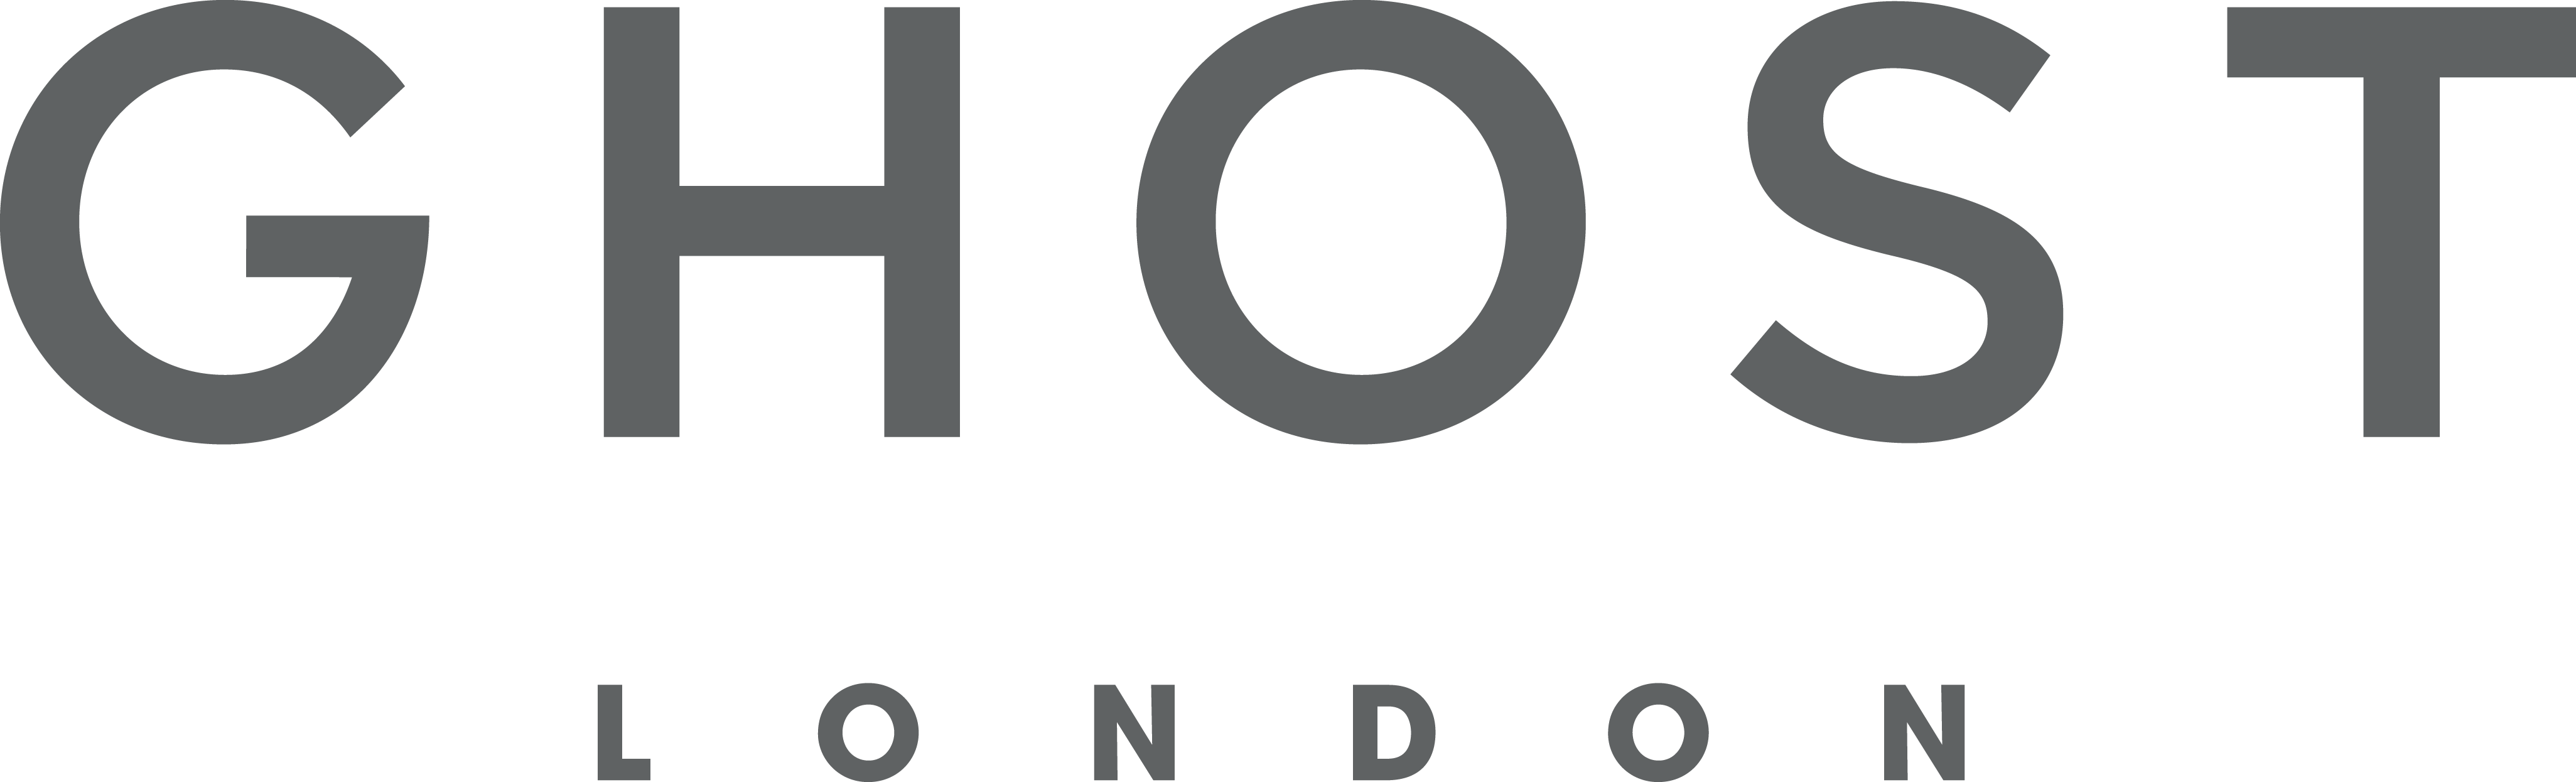 GHOST London logo